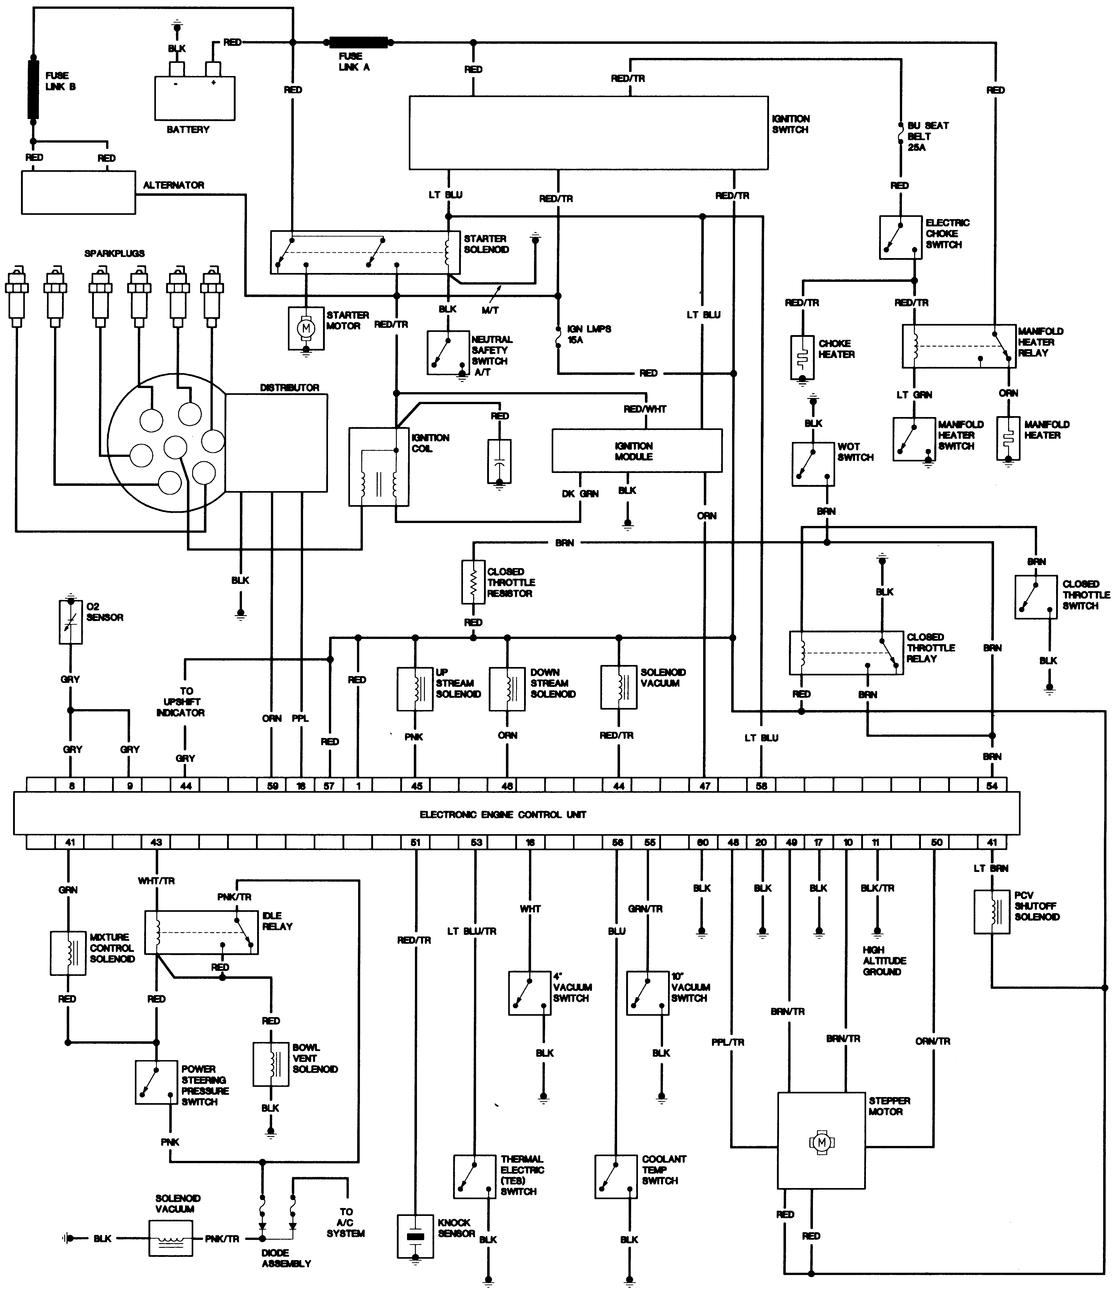 Brake Wiring Diagram 1983 Jeep Cj7 - Bonneville Engine Schematics -  clubcar.ati-loro.jeanjaures37.frWiring Diagram Resource